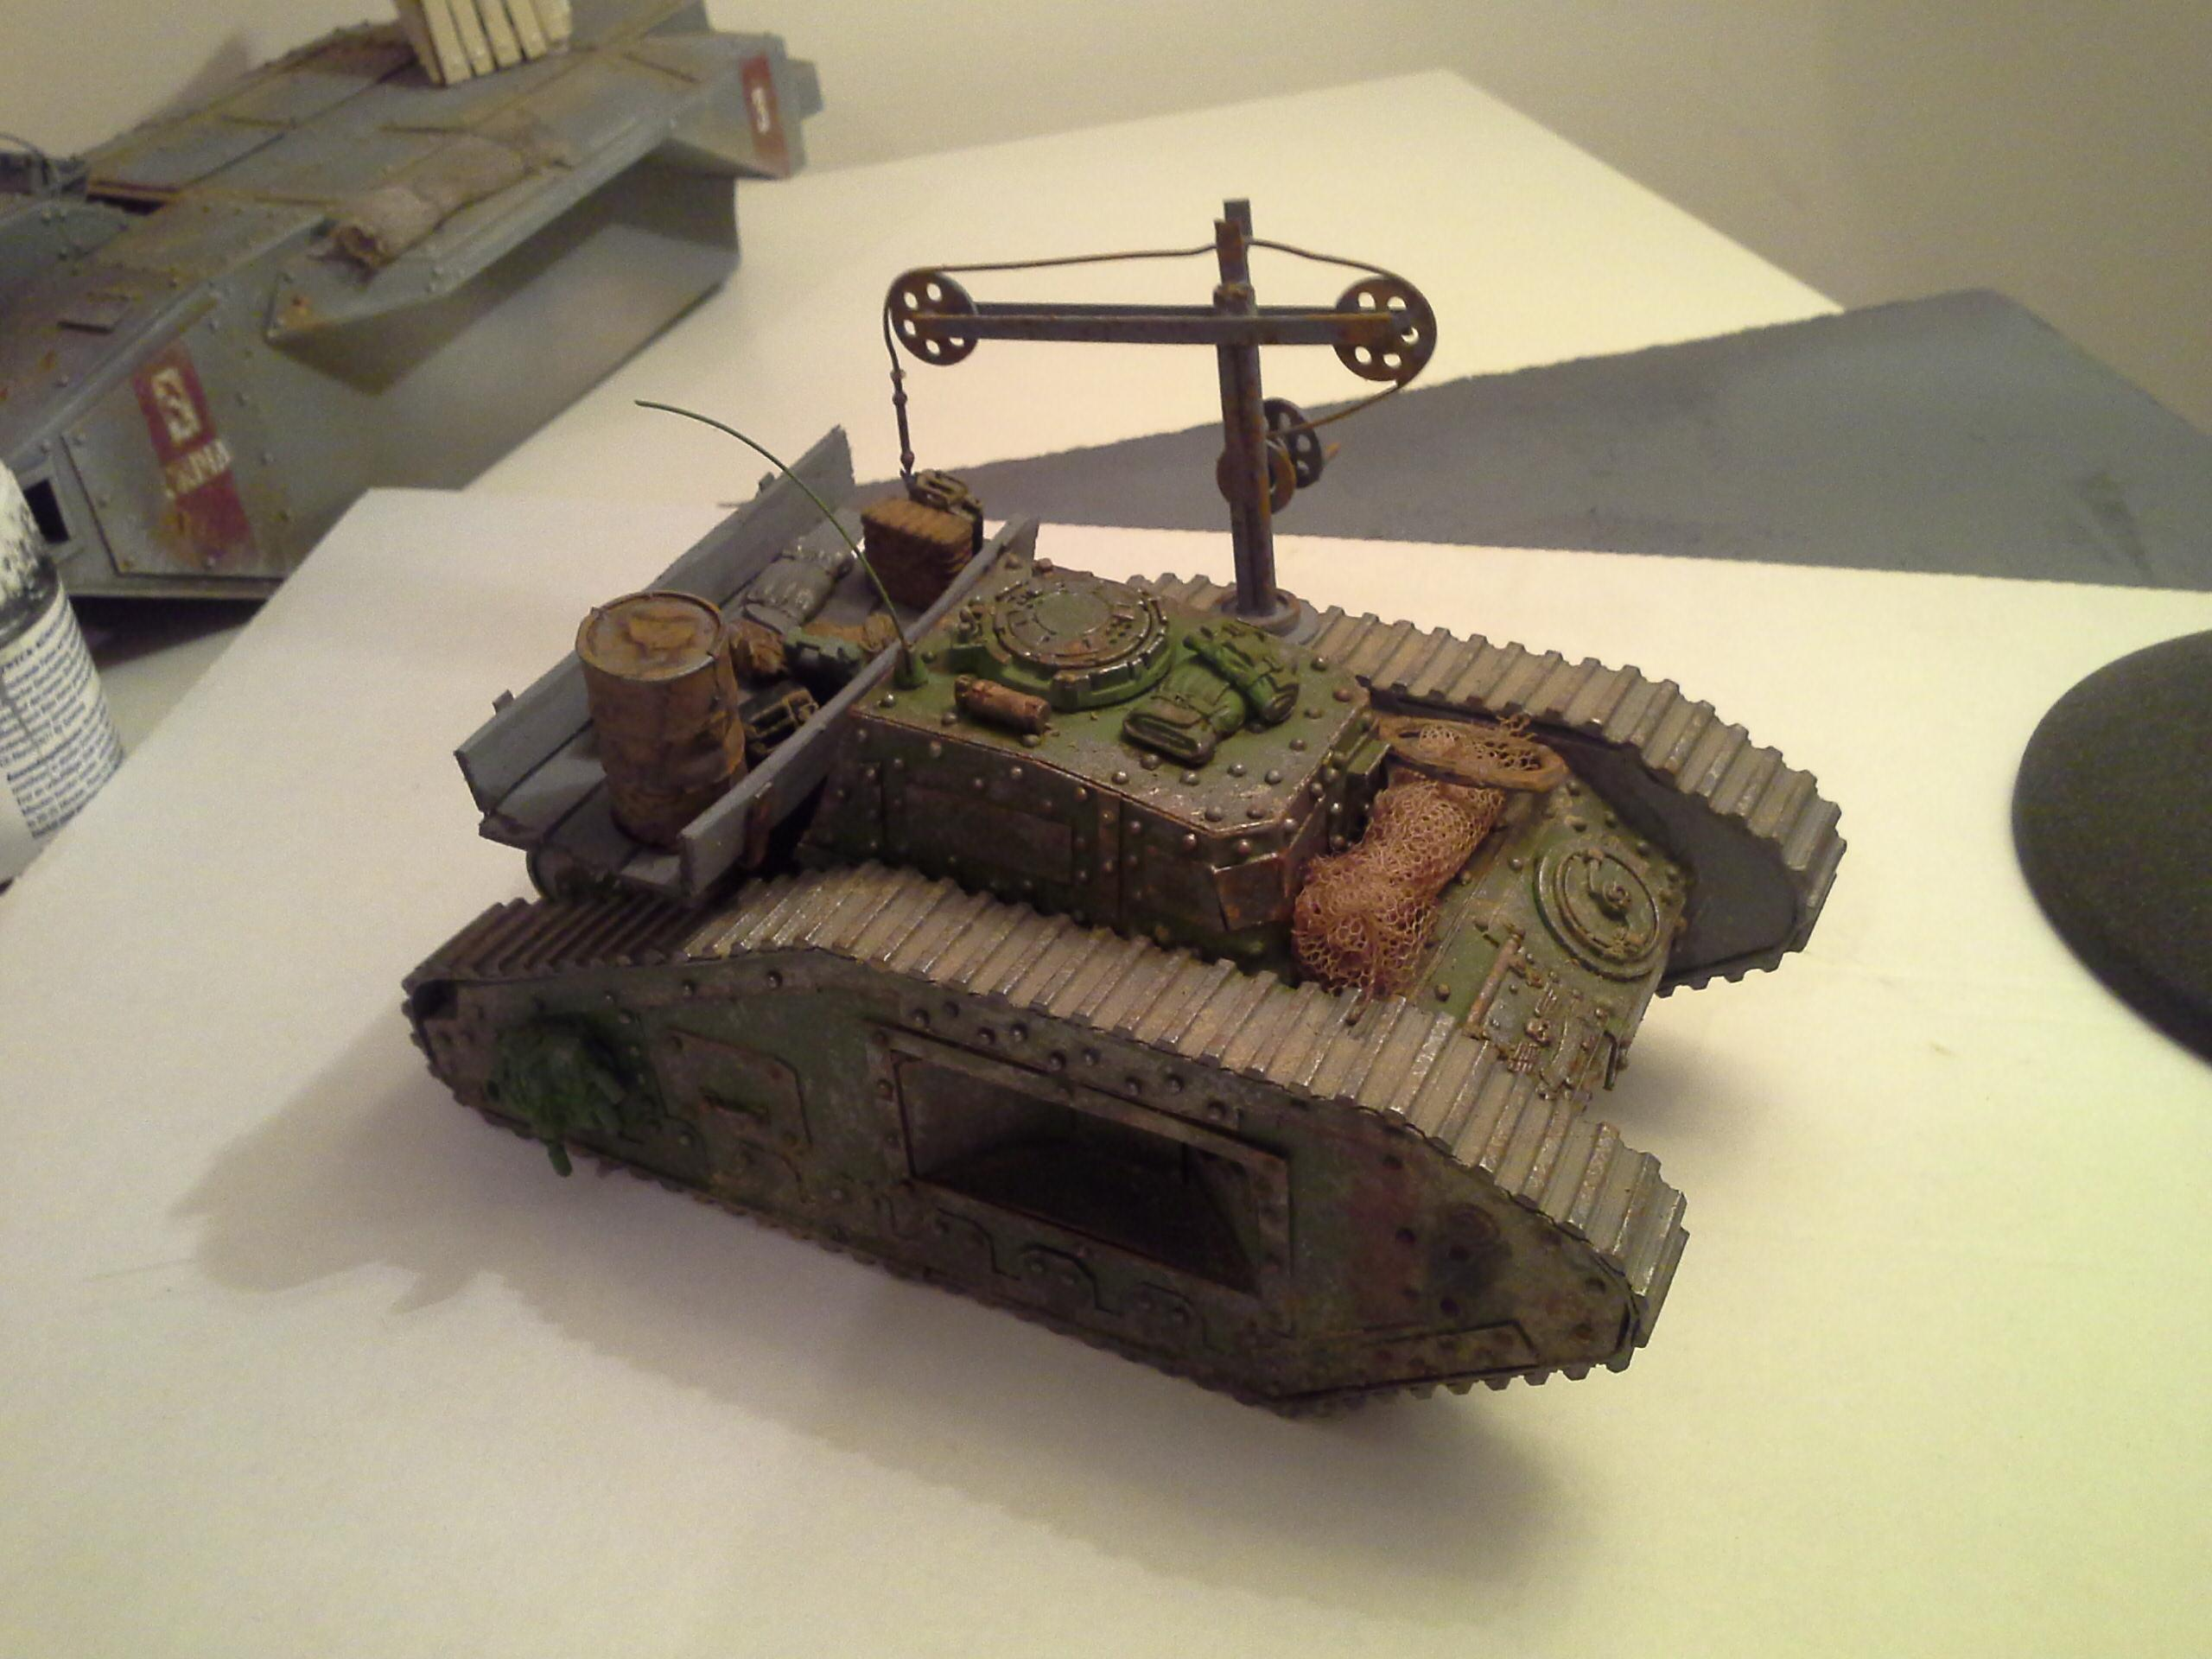 Ancient, Defender, Imperial Guard, Malcador, Rivets, Rust, Supply, Tank, Weathered